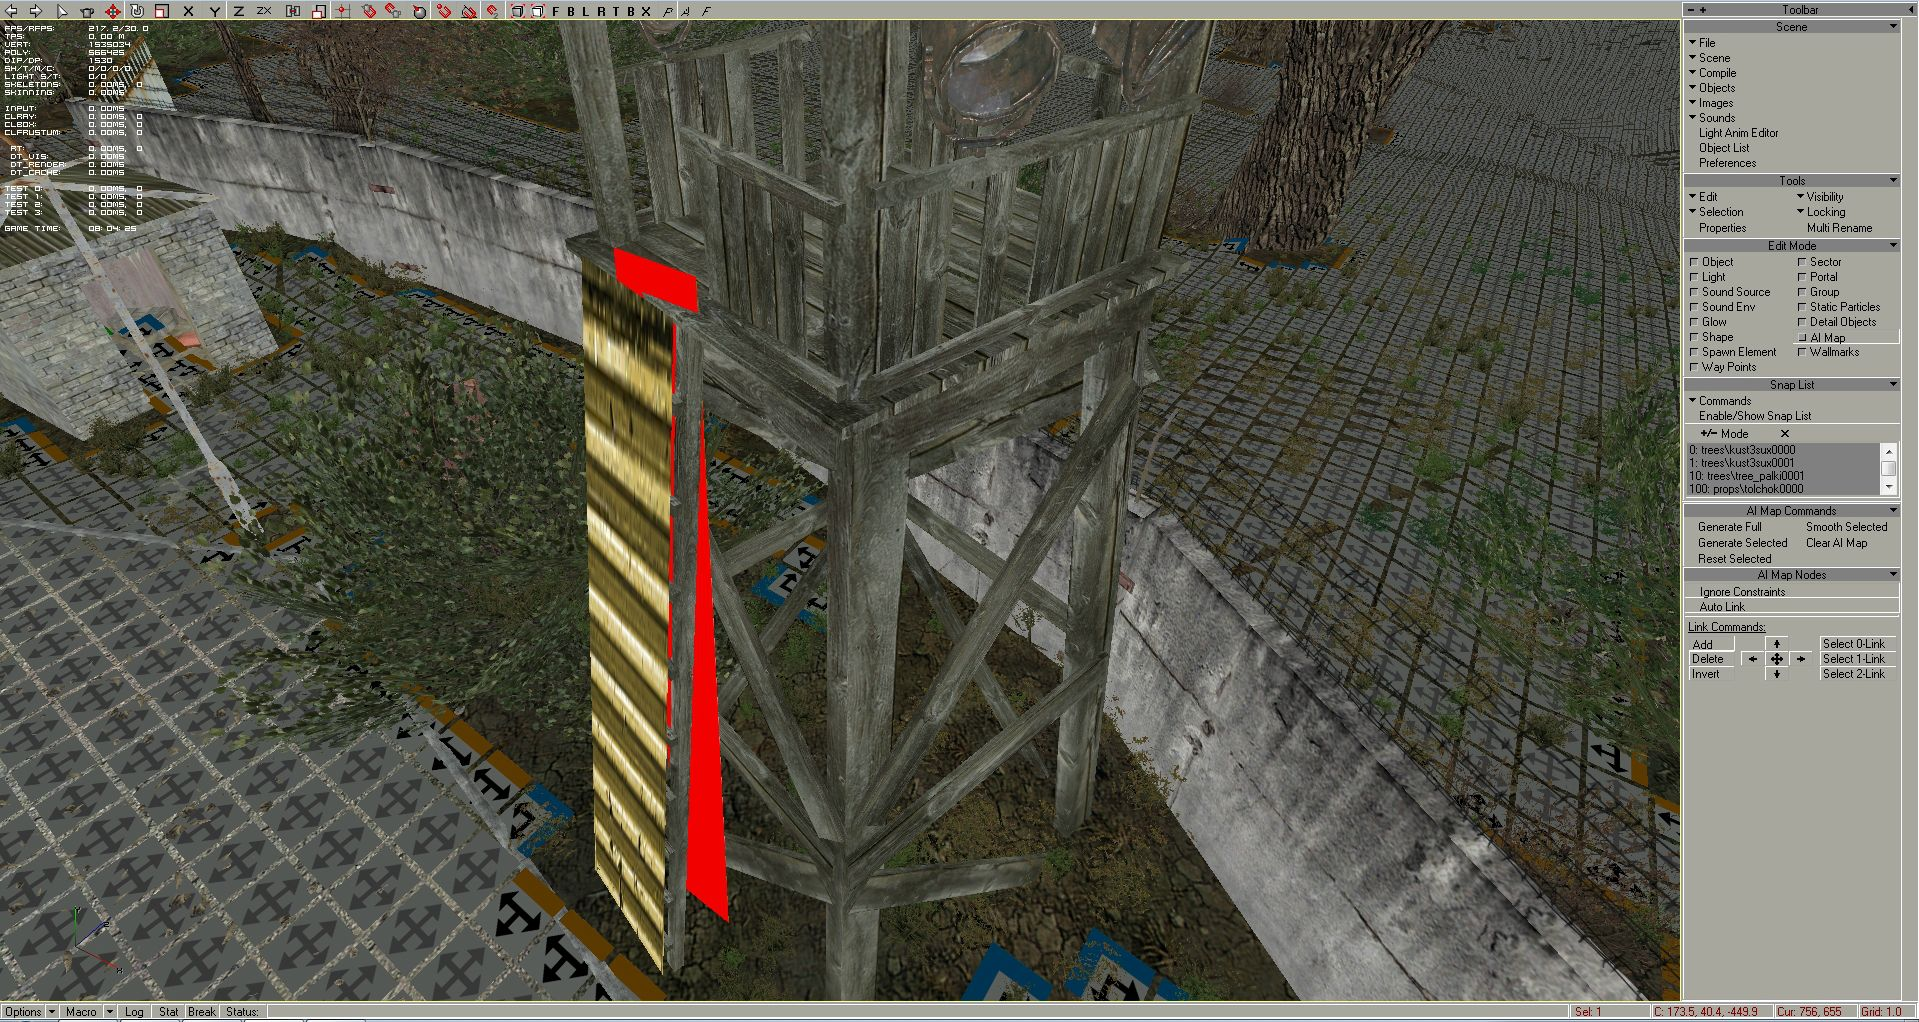 Now I have to move the ai node into a position, where it can link the ground and the watchtower flooring. While the ai node is still selected, select at the top toolbar the red cross shaped arrow - the Move button, press Y nearby, and start to move the ai node along Y axis up or down: